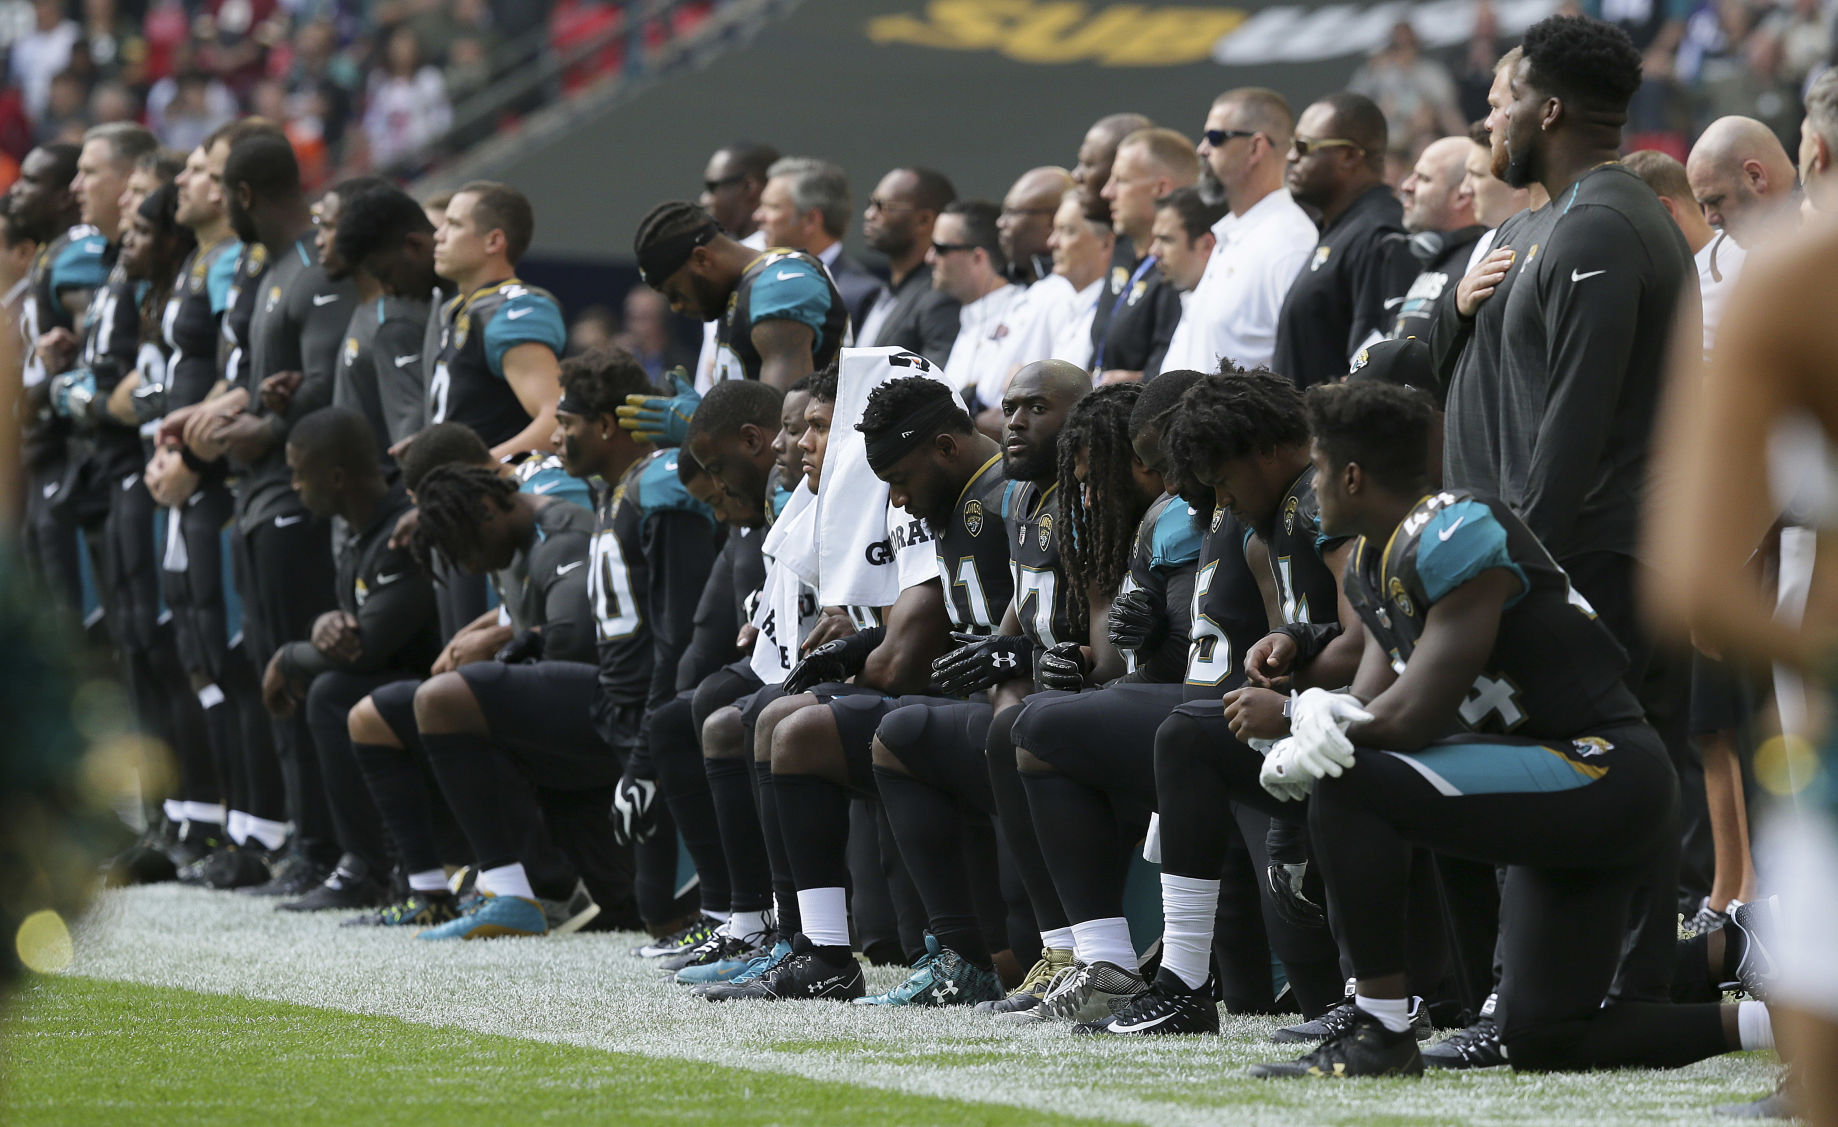 Jaguars Owner Shad Khan Issues Statement After Joining Team Protest